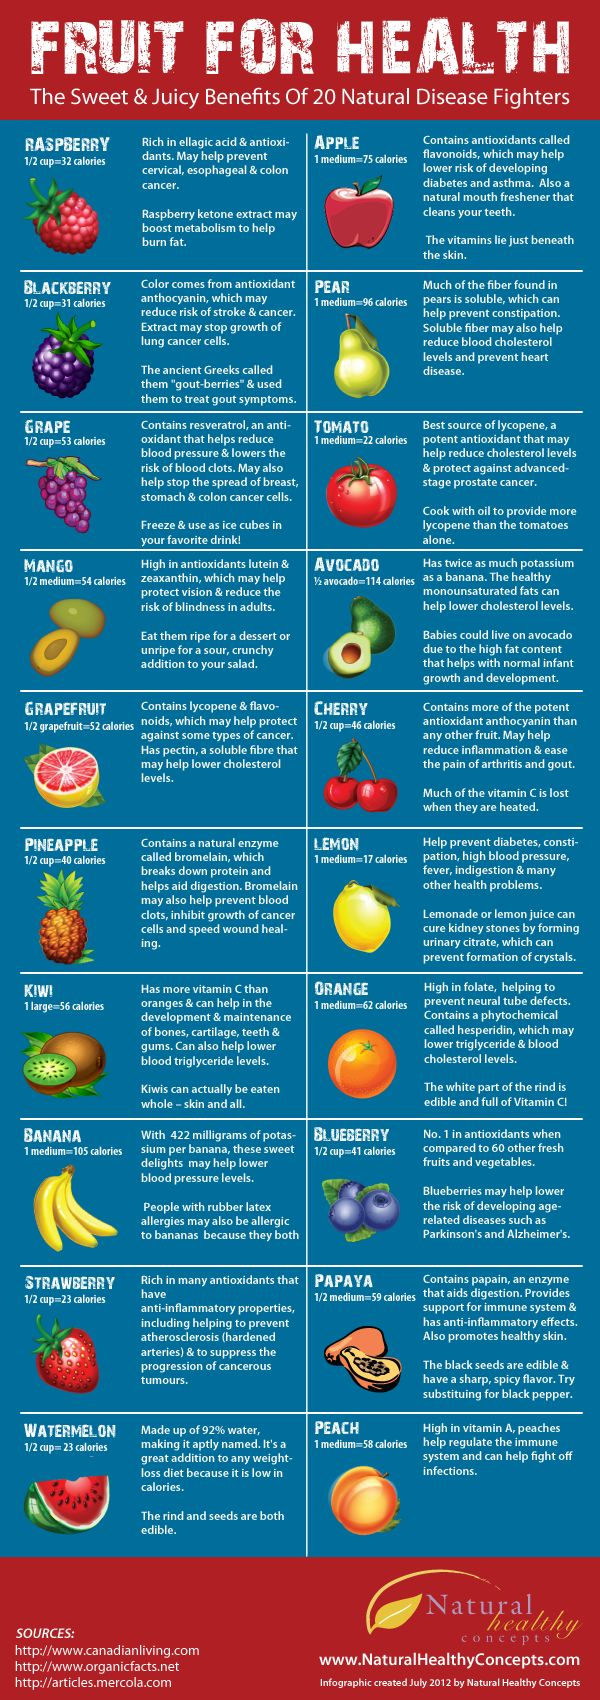 Most fruits are packed with many vitamins and fiber necessary for a balanced diet. Instead of spending money on vitamin pills, a yummy way of getting your required amount of vitamins is to eat them straight from the food source! Living on a clean, raw diet that includes fruit can have it's perks that include weight loss, increased energy, and better health overall!